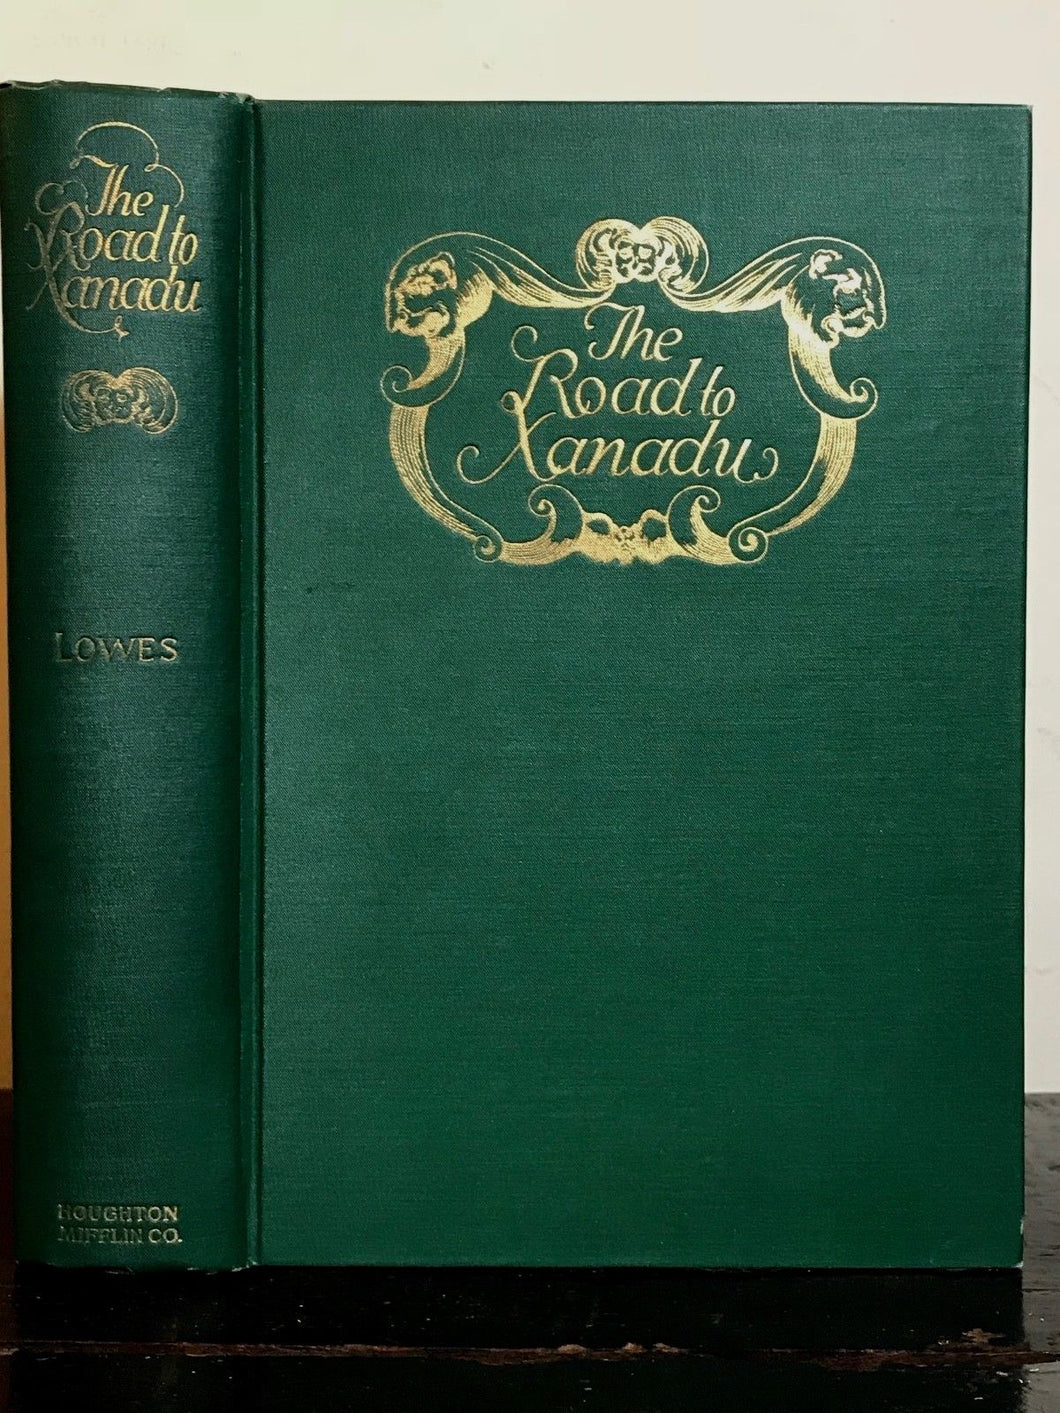 1927 - THE ROAD TO XANADU by JOHN LOWES, 1st/1st - COLERIDGE Poetry Analysis